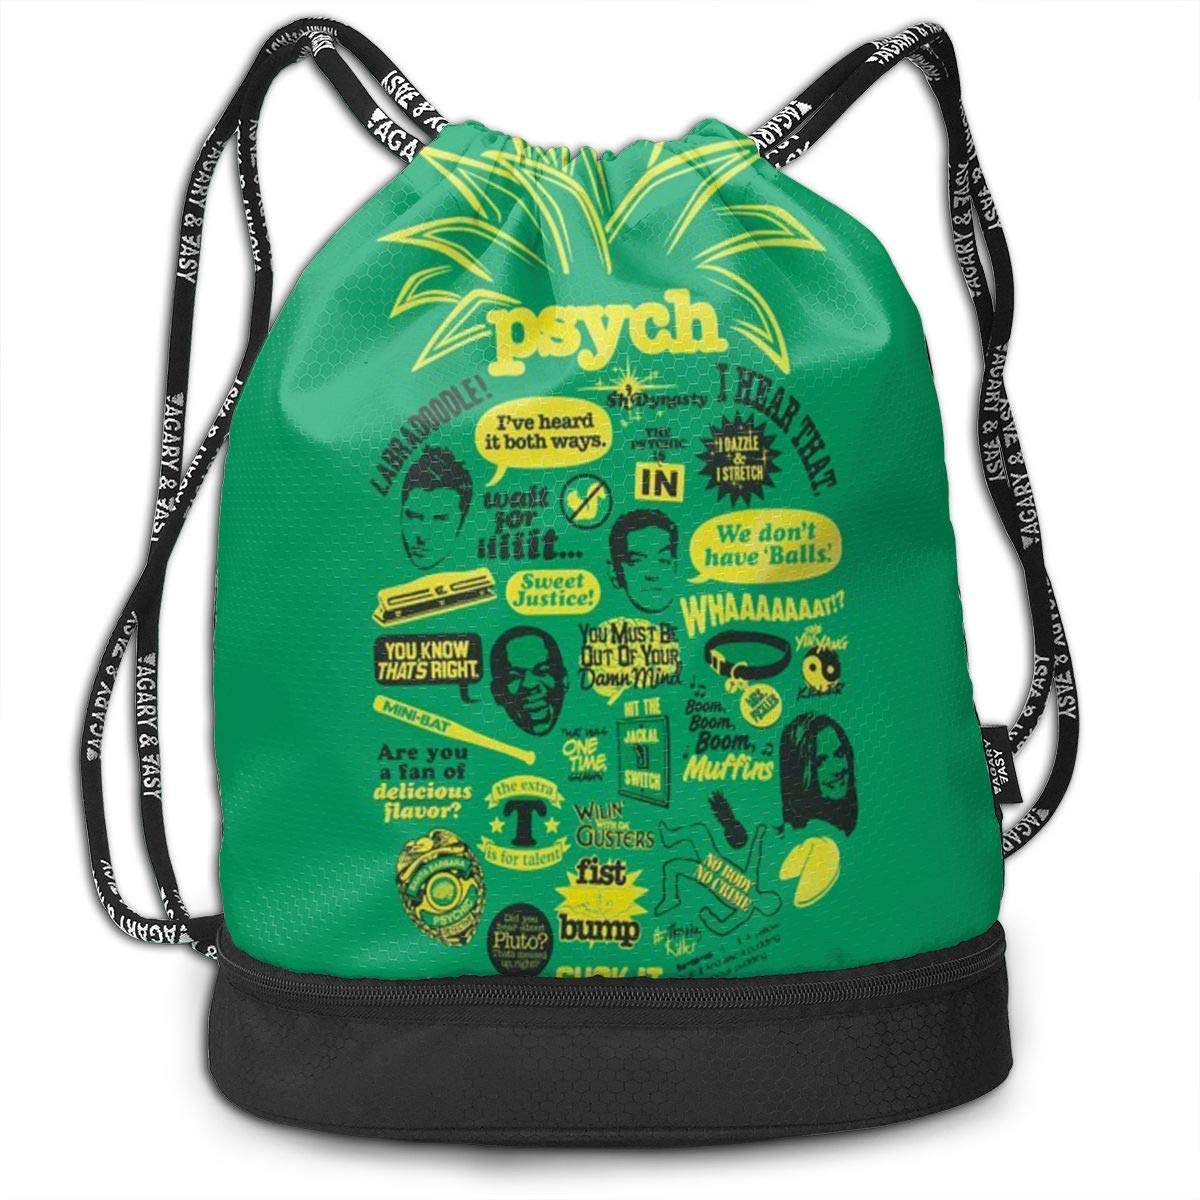 Aeykis Unisex Psych Pineapple Quote Mash Up Drawstring Shoulder Backpack Travel Daypack Gym Bag Waterproof